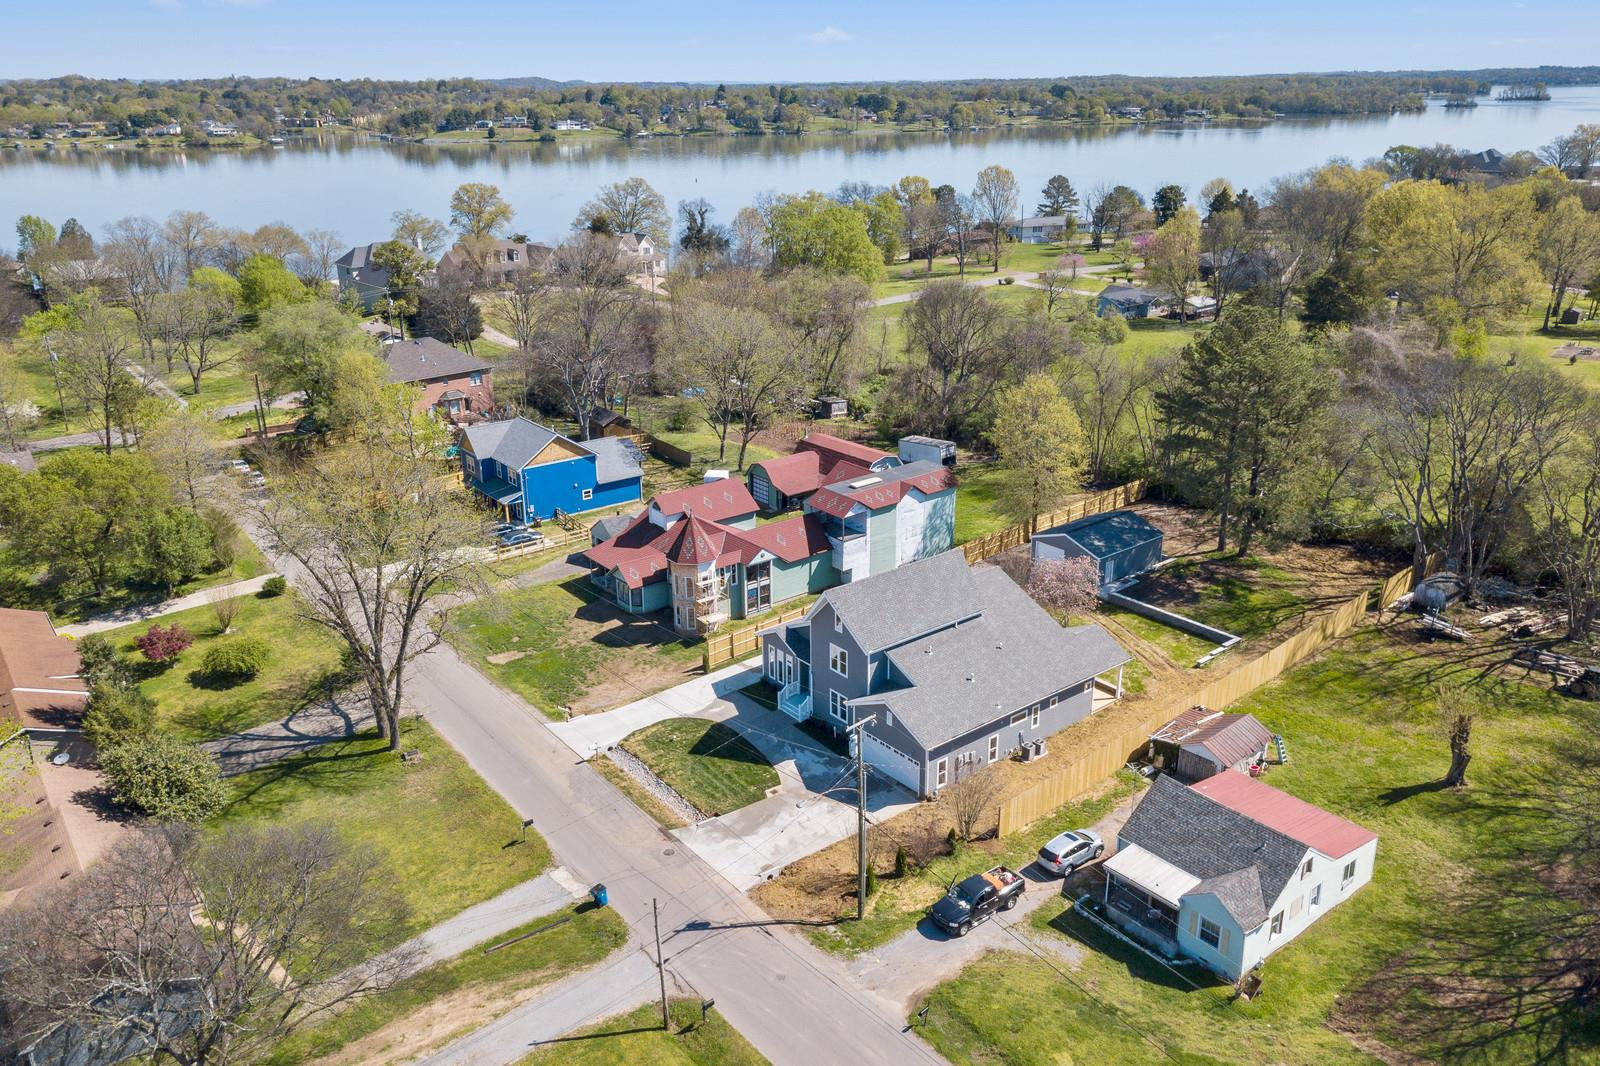 218 Anthony Ave, Old Hickory, TN 37138 - Old Hickory, TN real estate listing